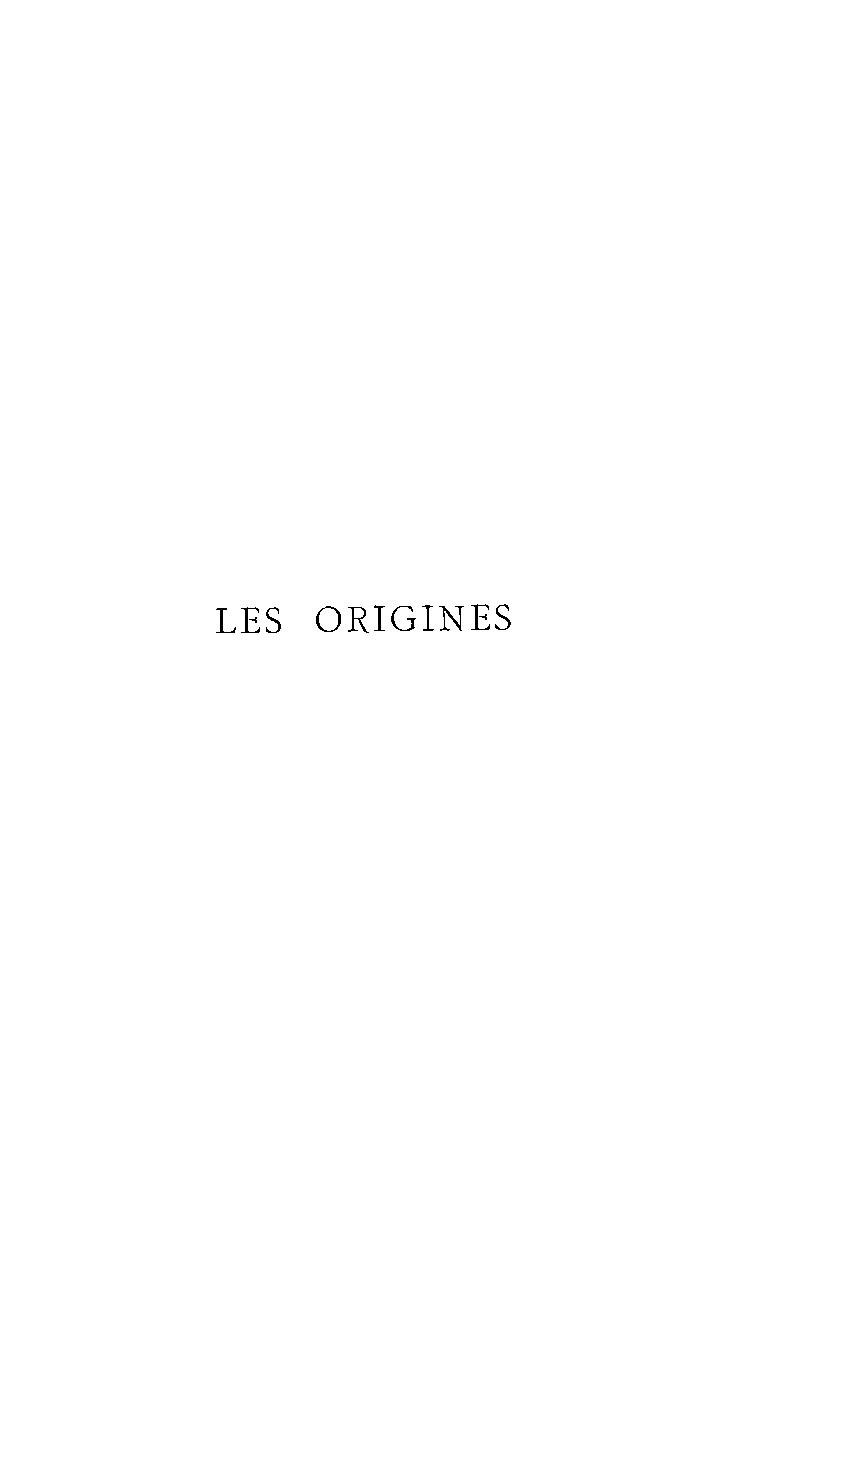 origin of life pdf file